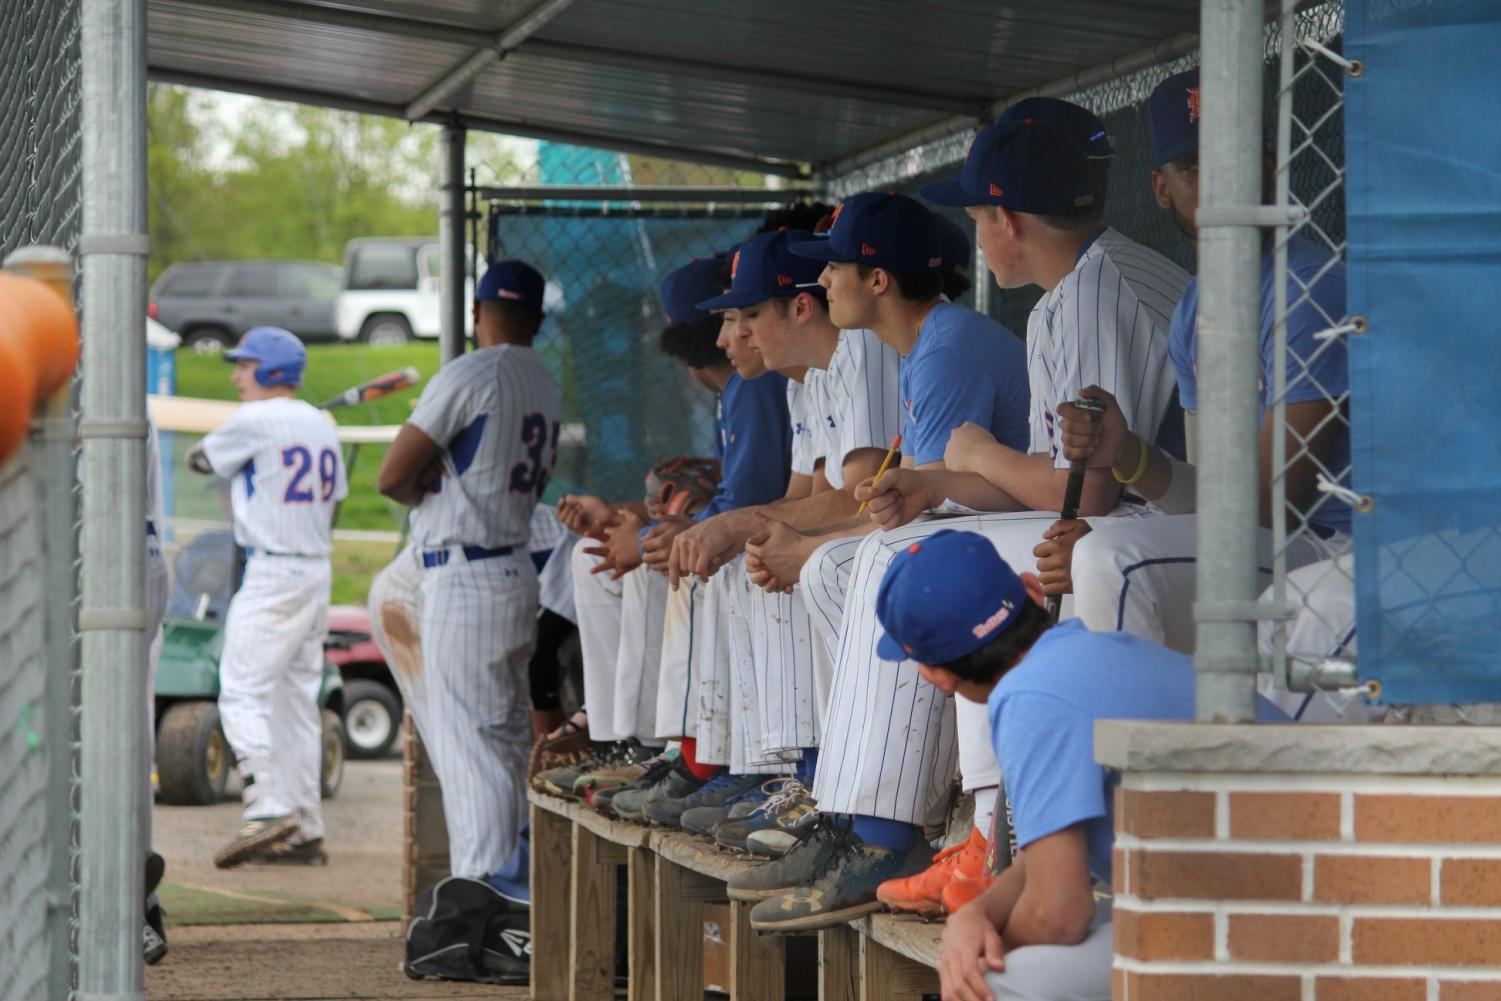 The Danbury Hatter baseball team in the dugout during a home game. The Hatters are currently 12-7, with a 10-6 in conference record.